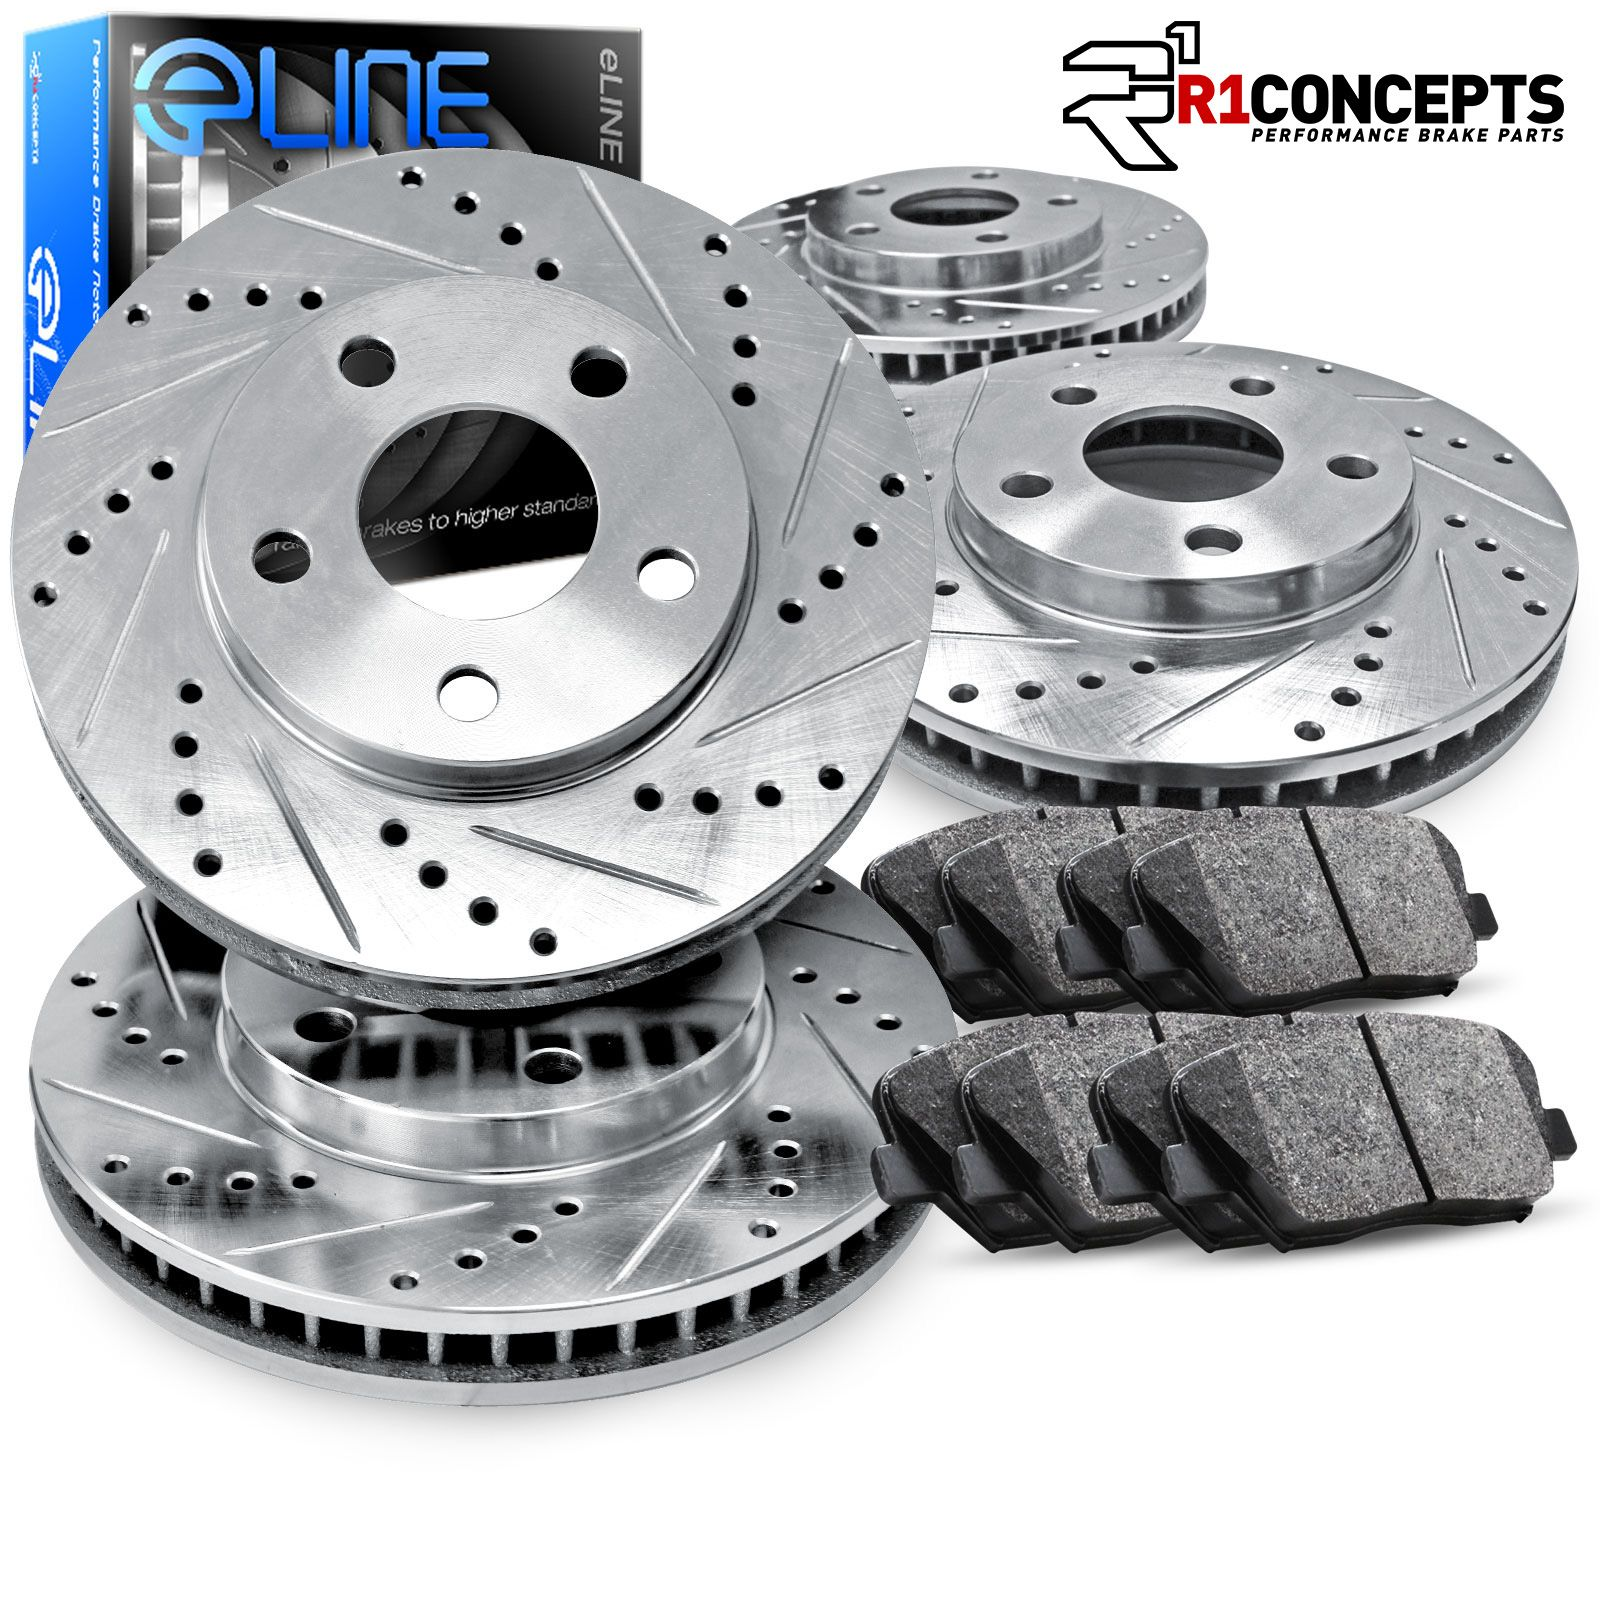 Fit 2003-2008 Hyundai Tiburon Rear Gold Drill Slot Brake Rotors+Ceramic Pads